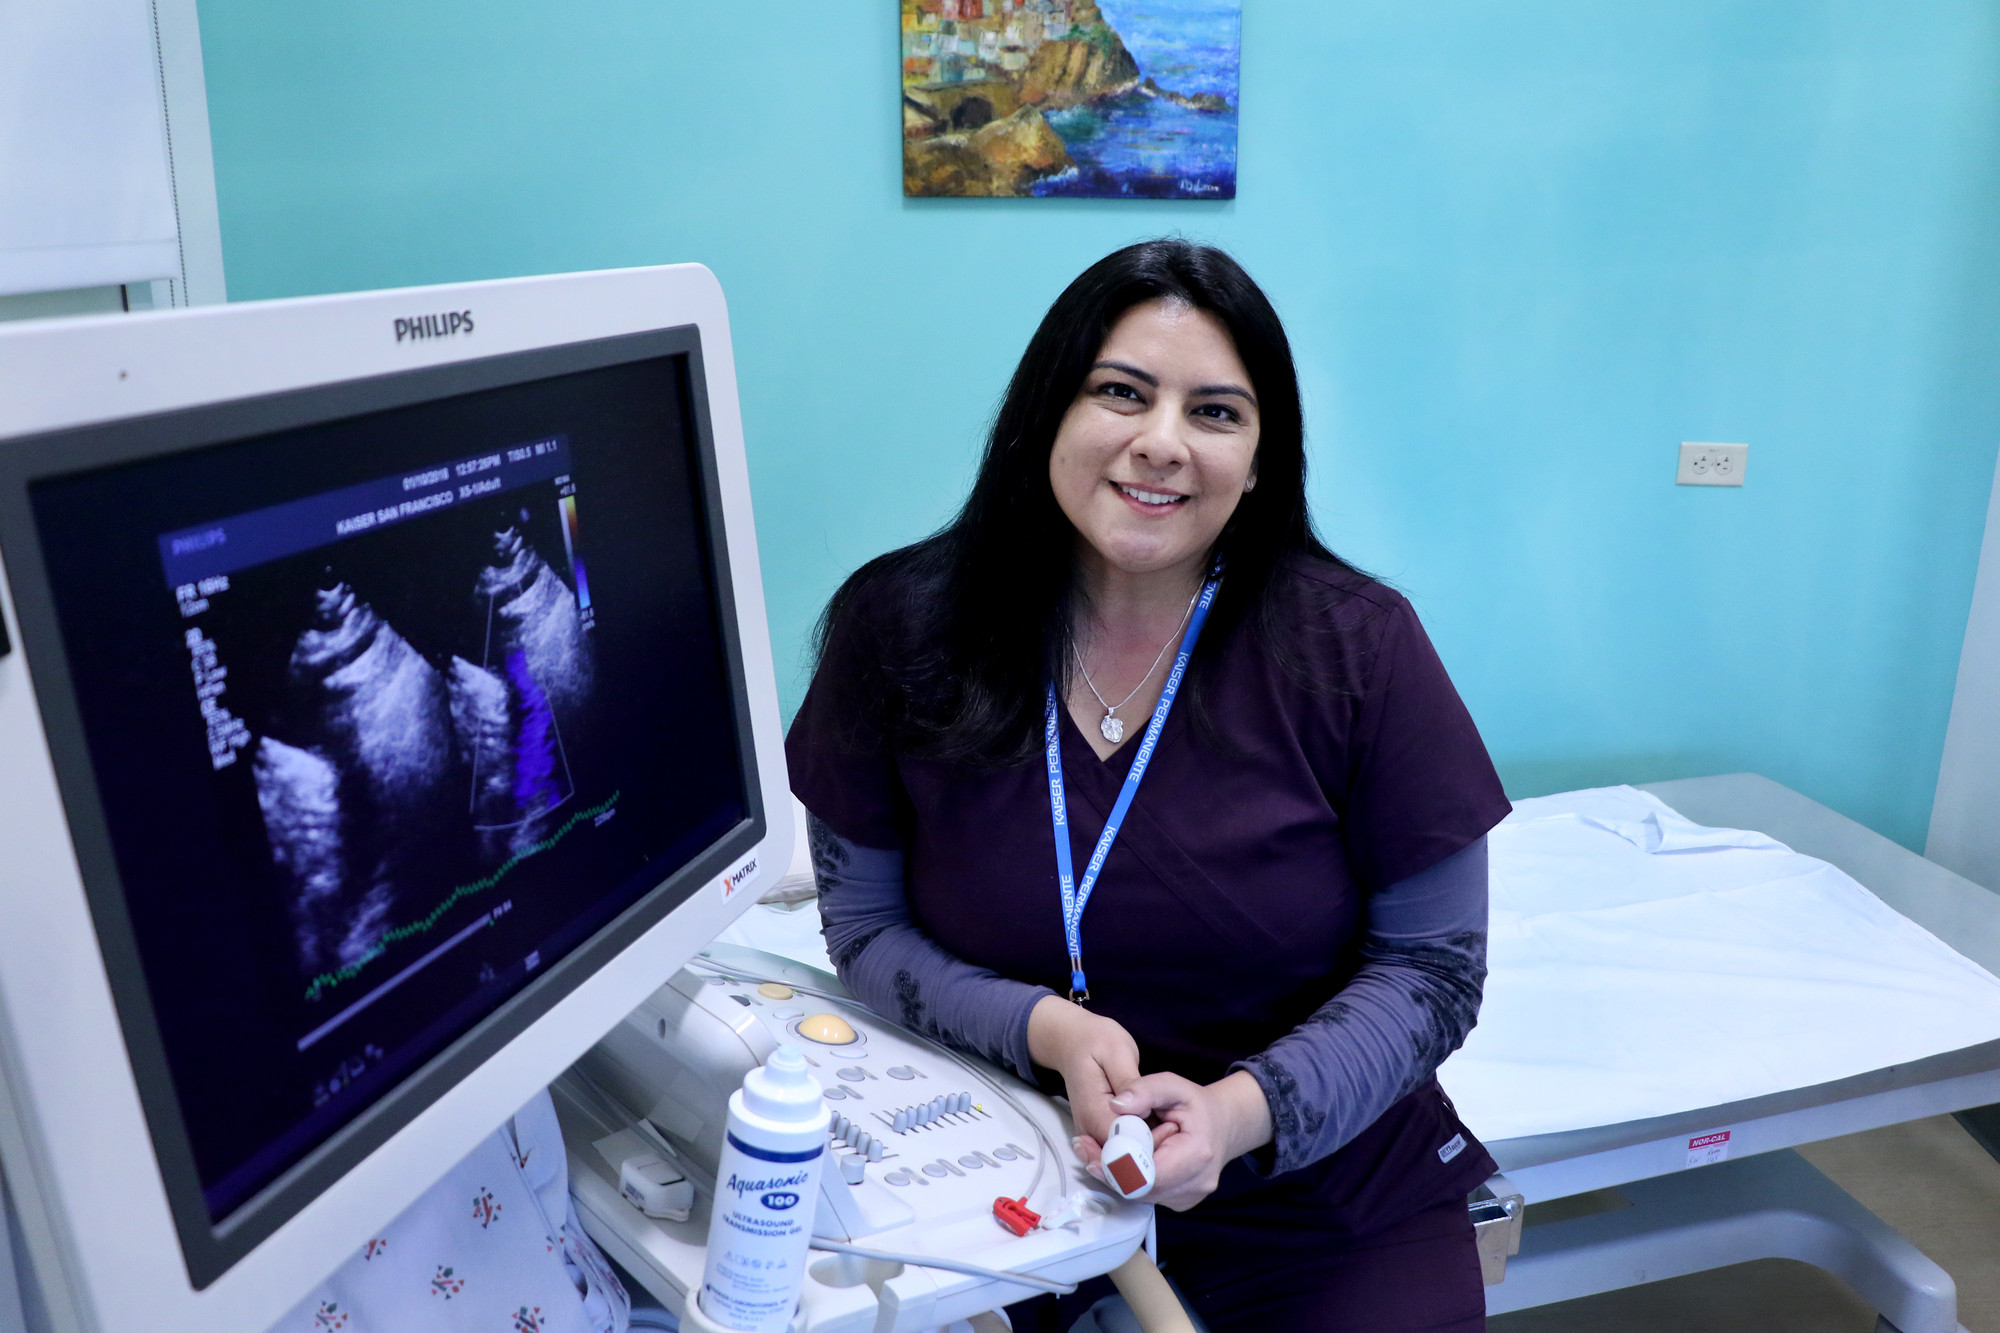 Portrait of sonographer sitting next to her equipment